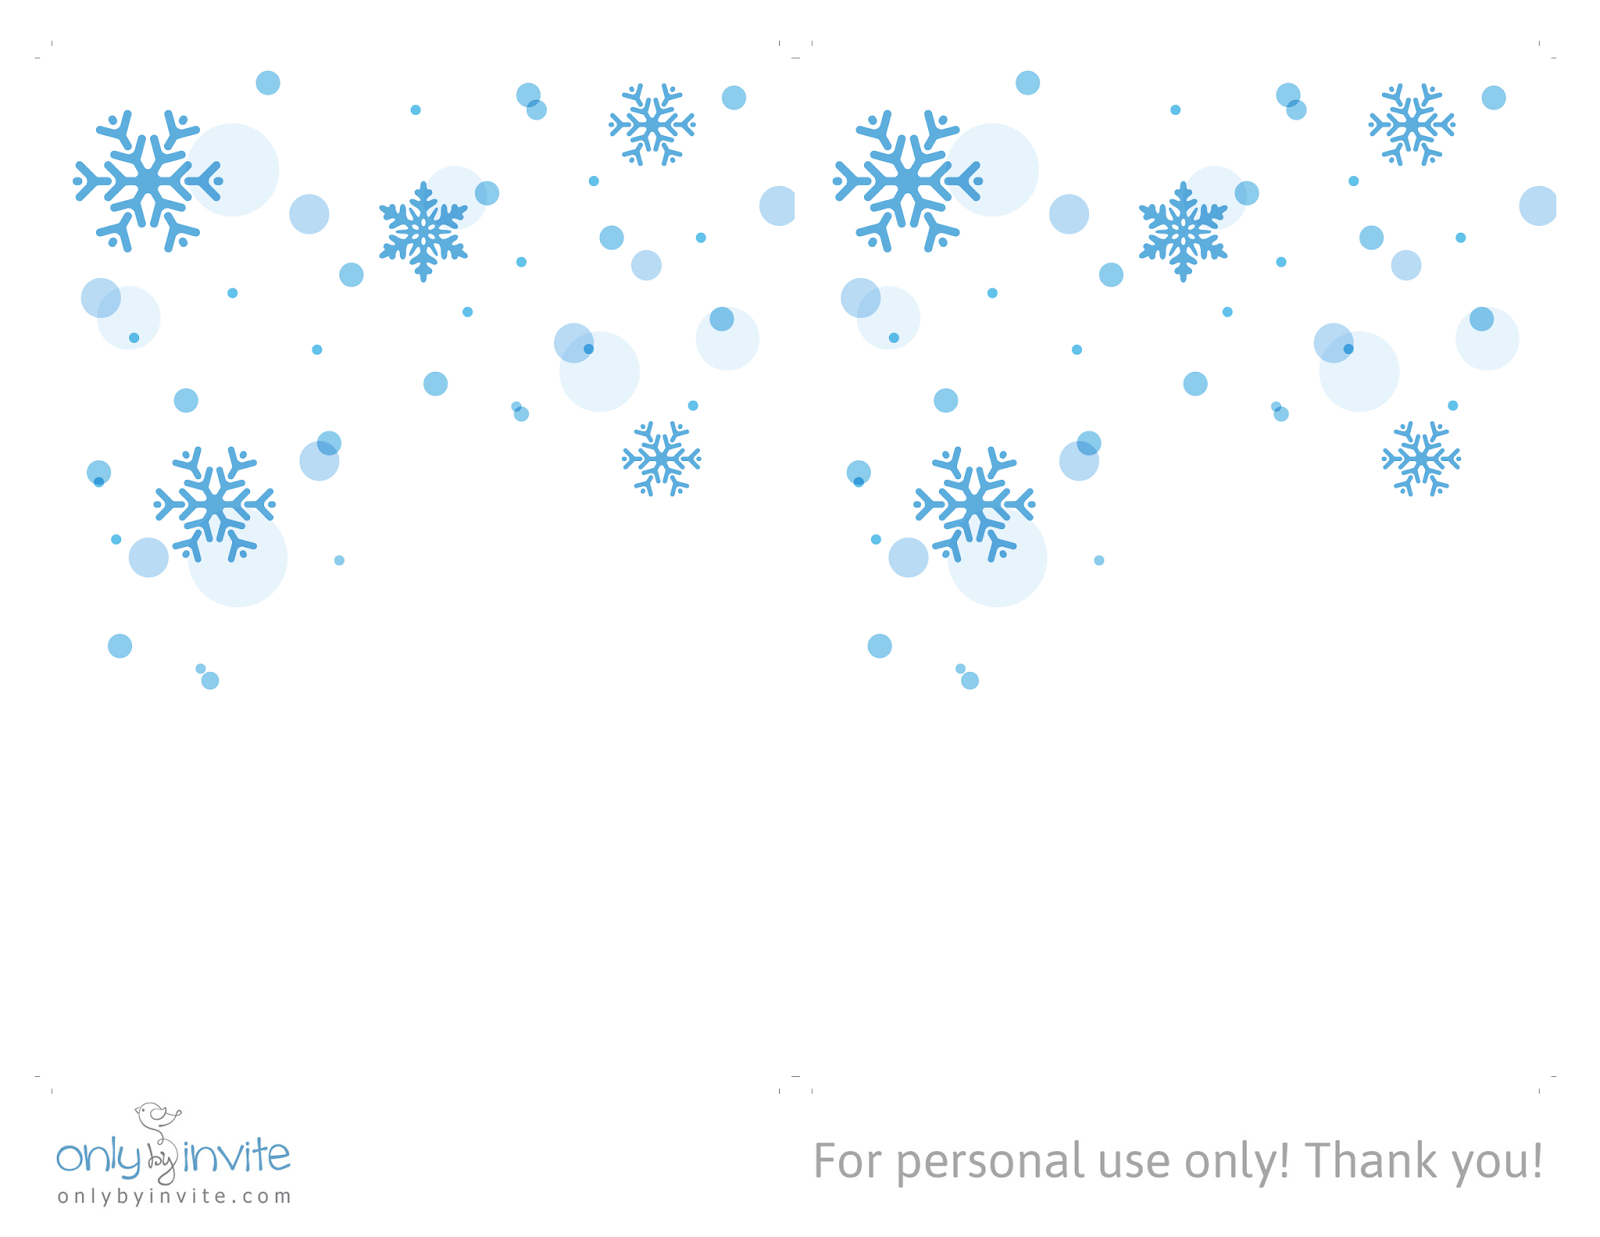 printables for happy occasions wedding invitation templates snowflakes winter wedding invitation template